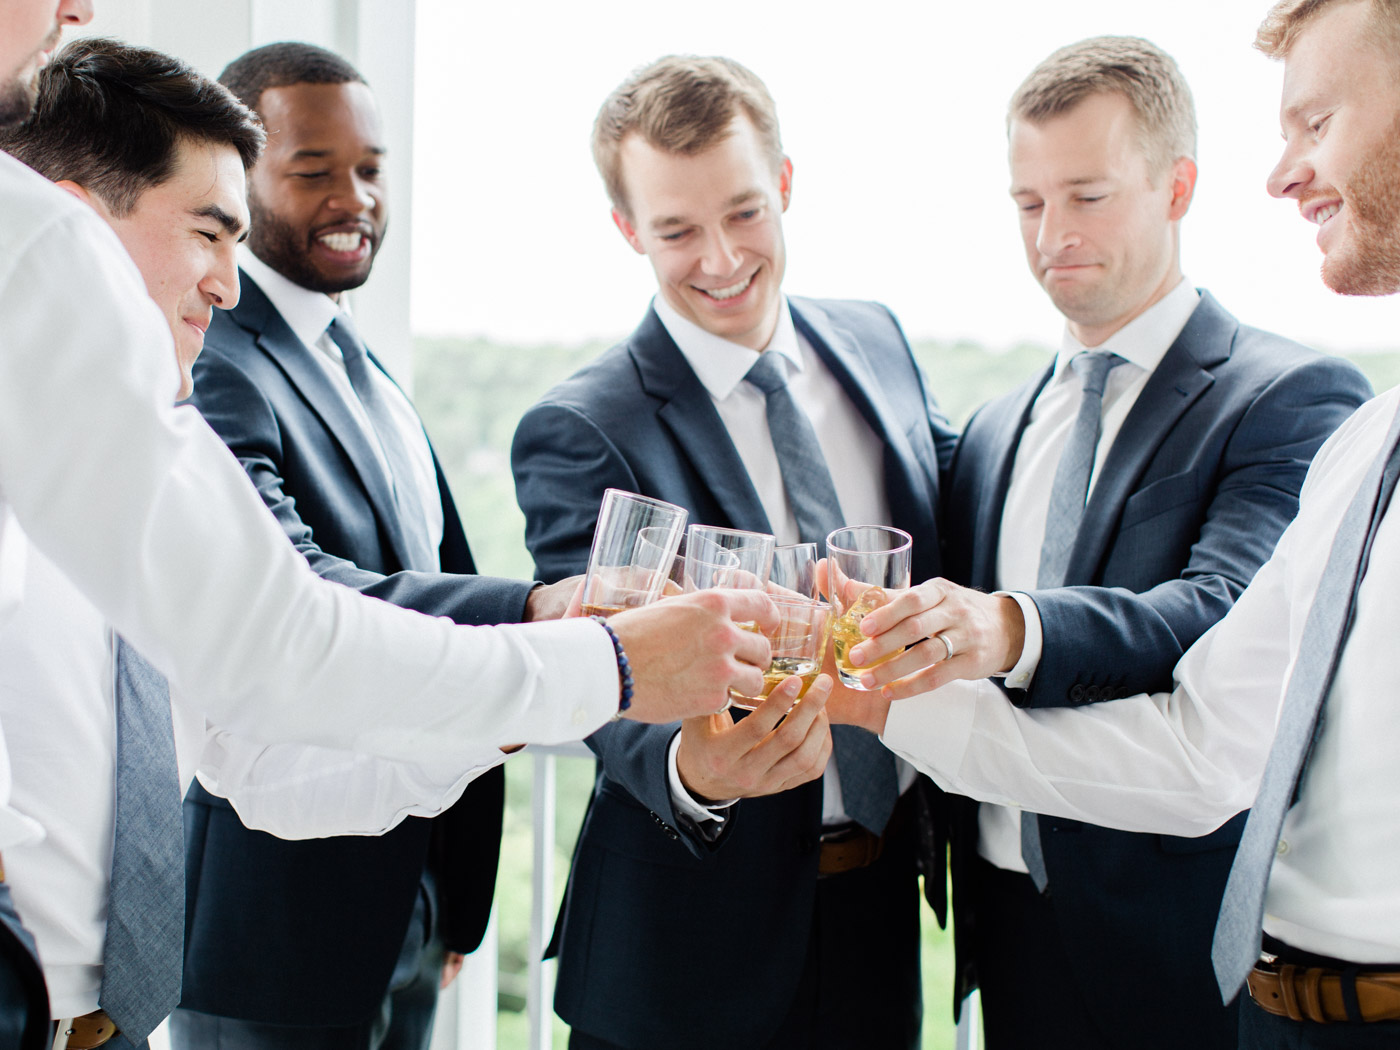 Candid photograph of the groom and groomsmen getting ready for a wedding.  Captured by Muskoka wedding photographer Corynn Fowler Photography.